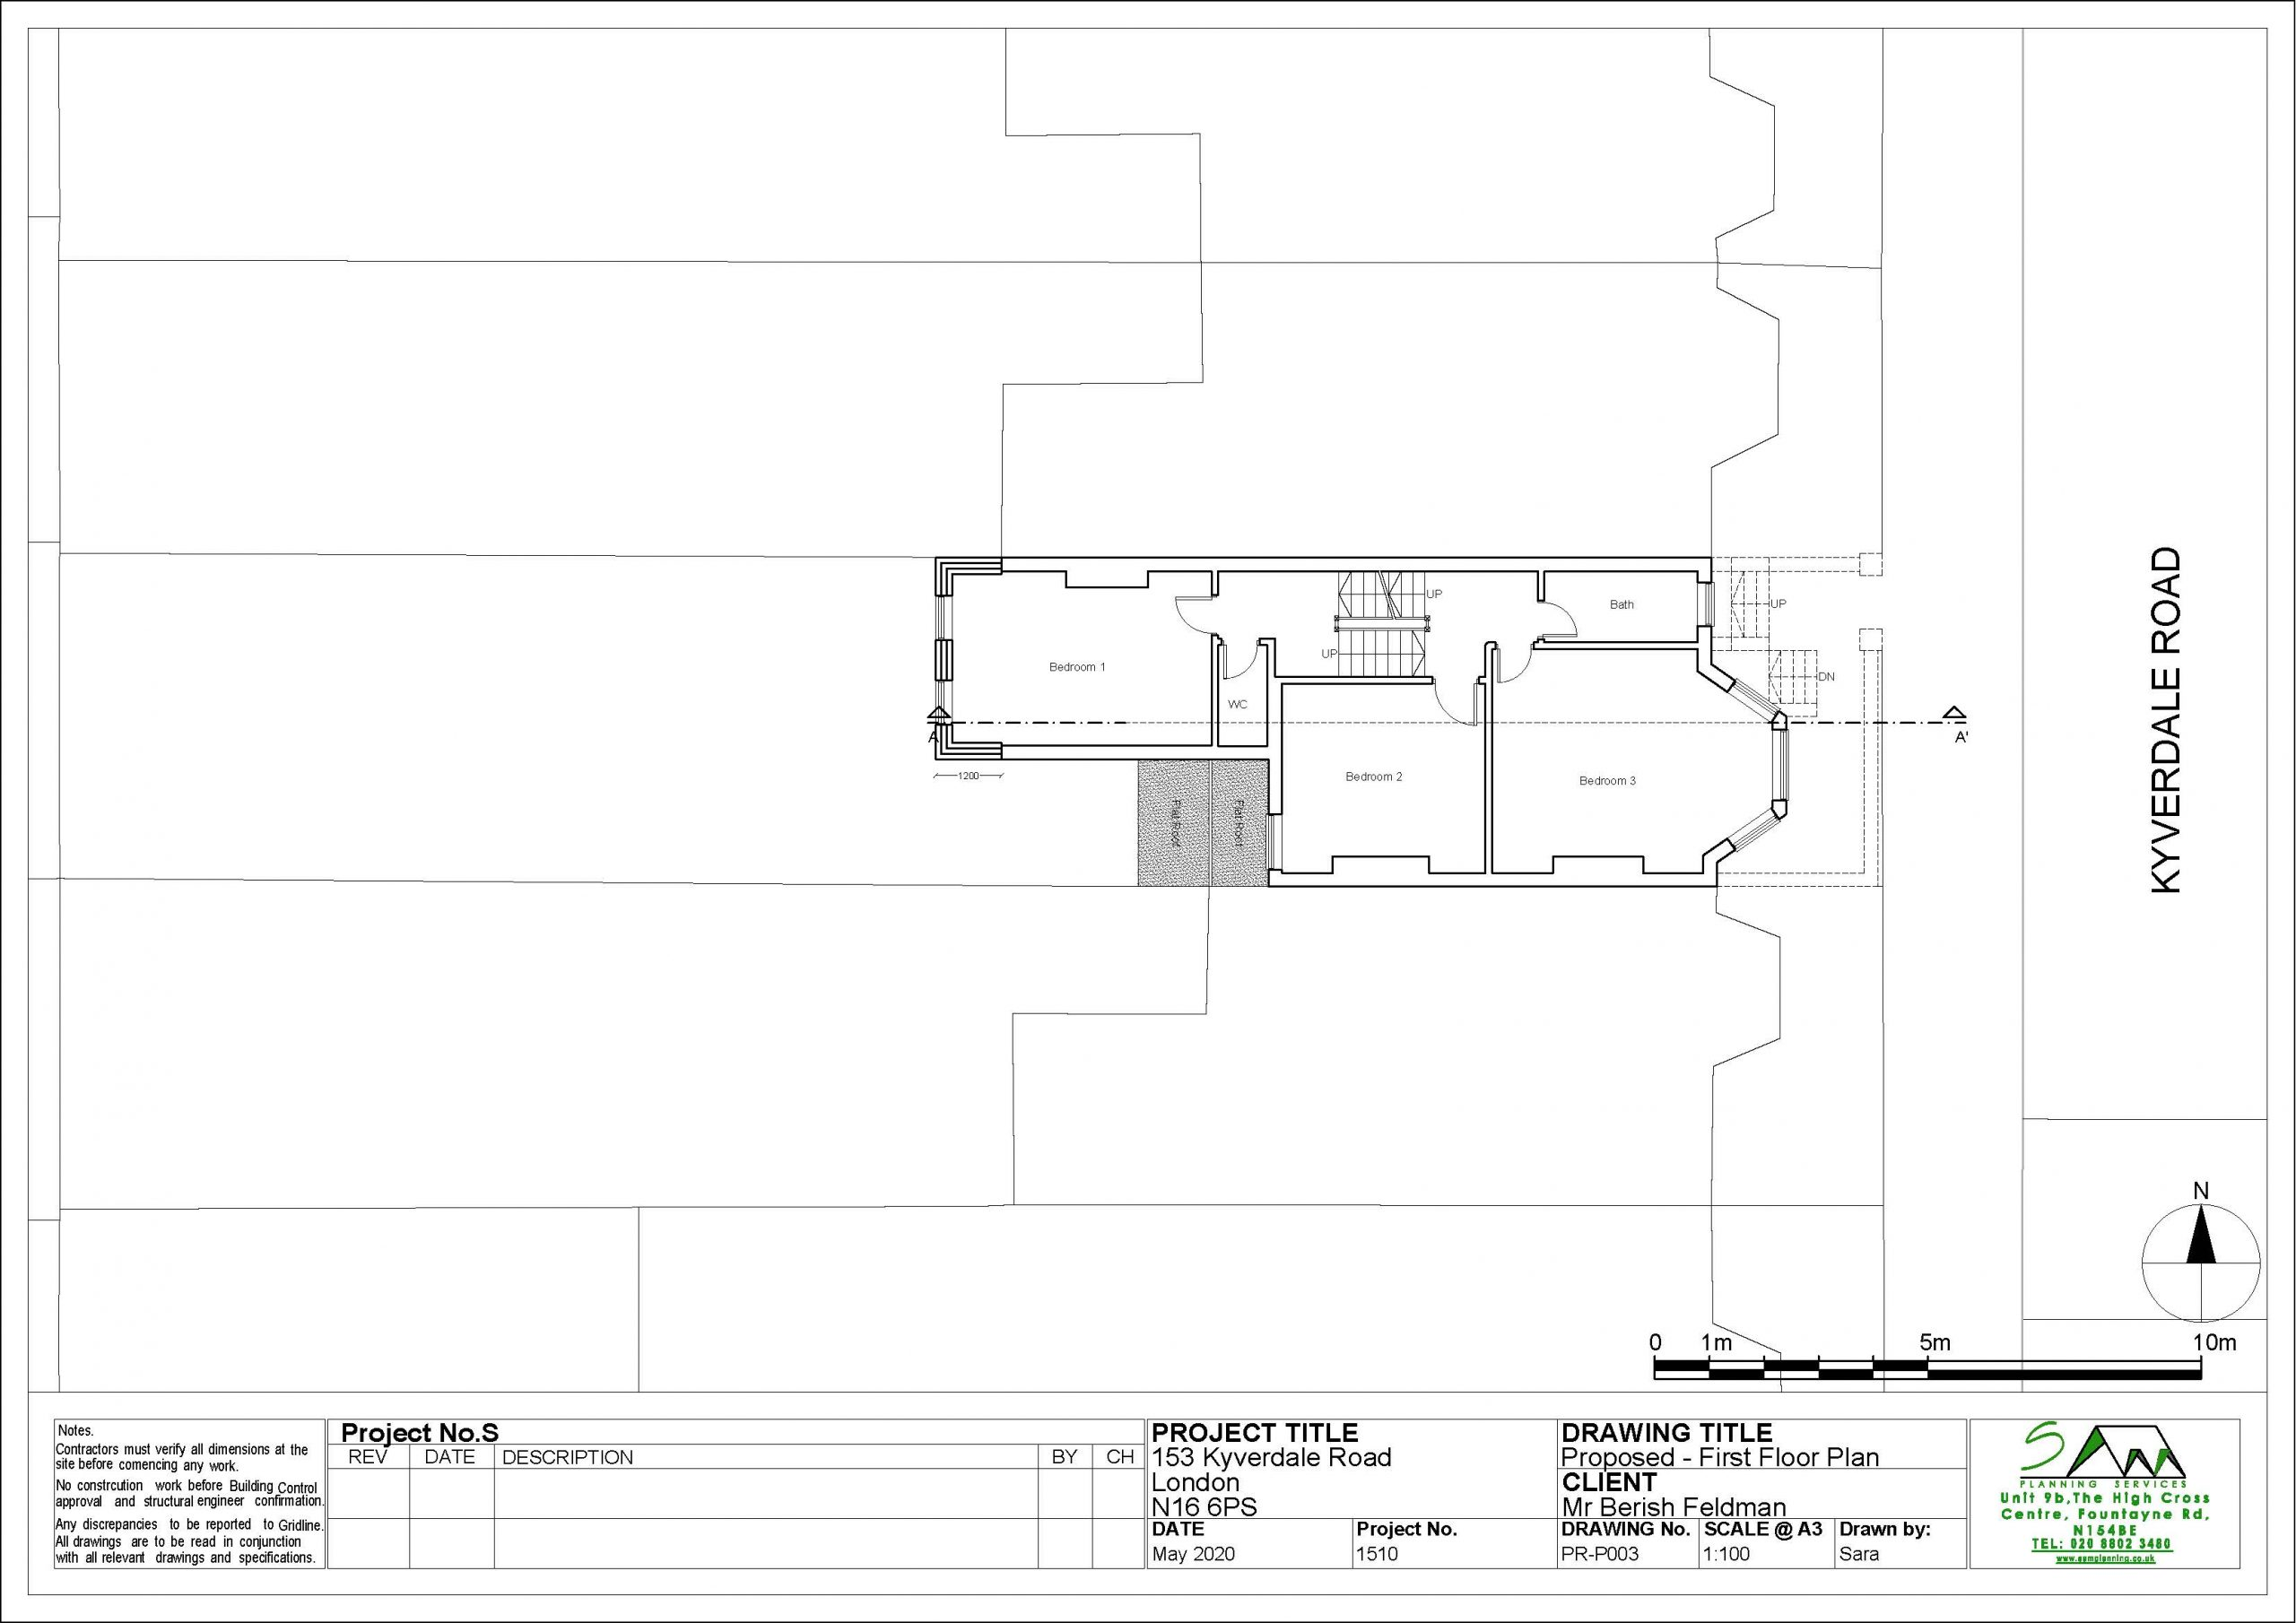 153kyverdaleProposed First Floor Plan